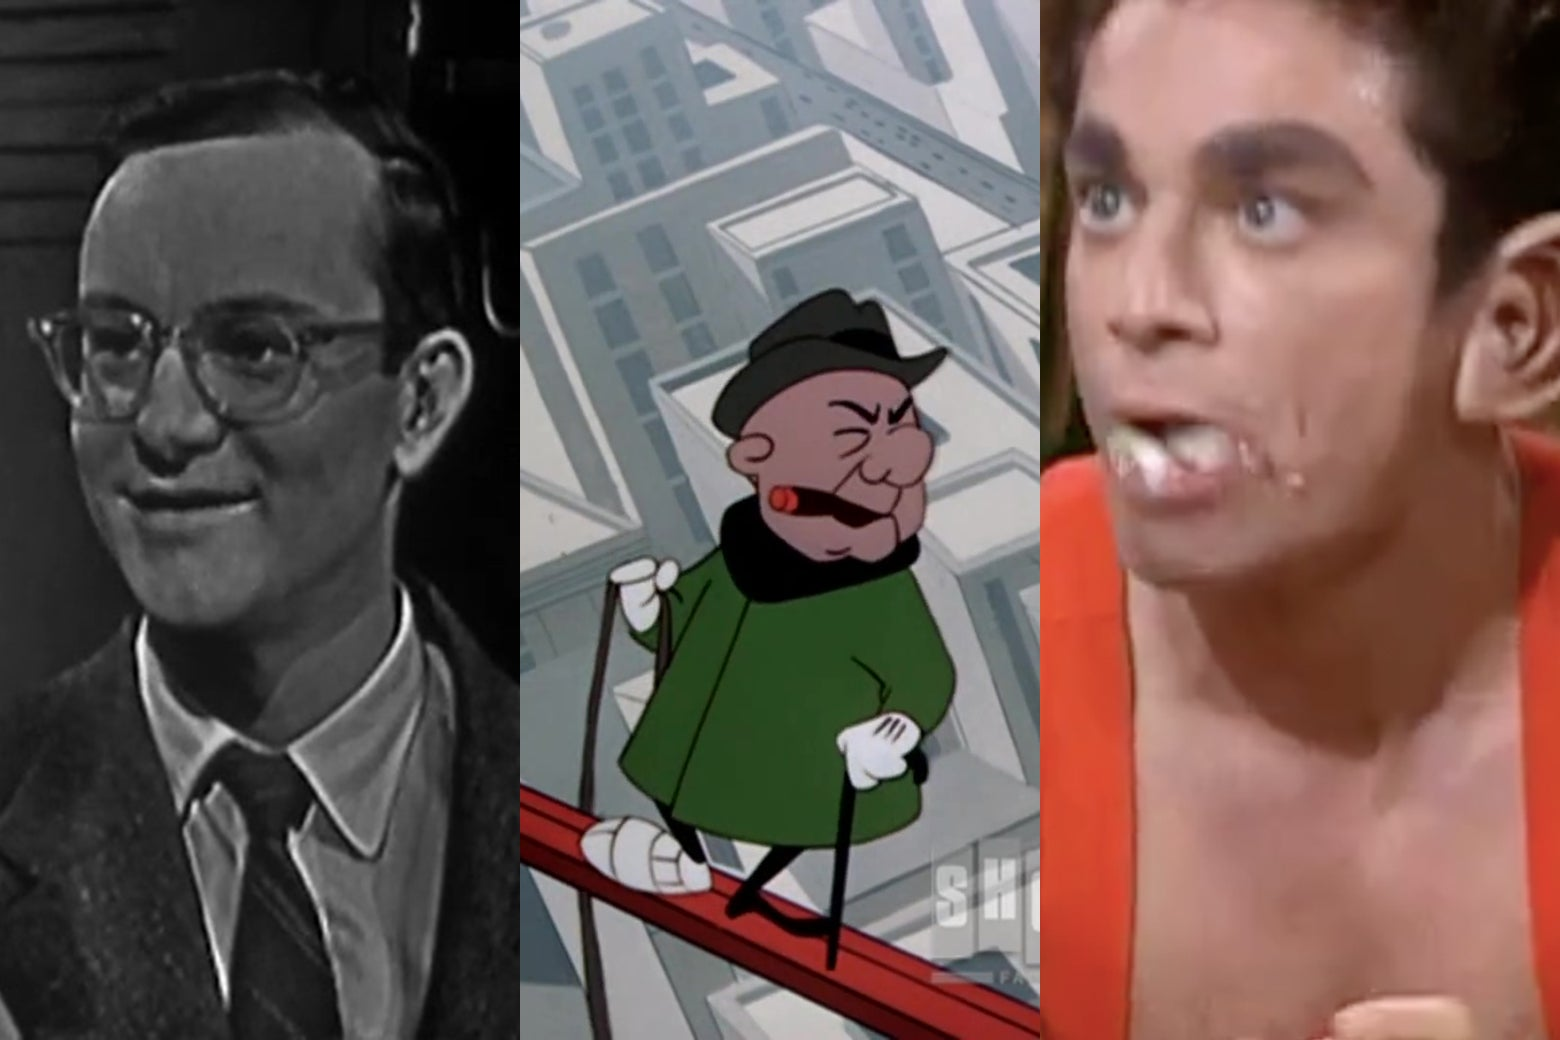 Wally Cox as Mr. Peepers, the animated character Mr. Magoo, and Chris Kattan as the other Mr. Peepers.